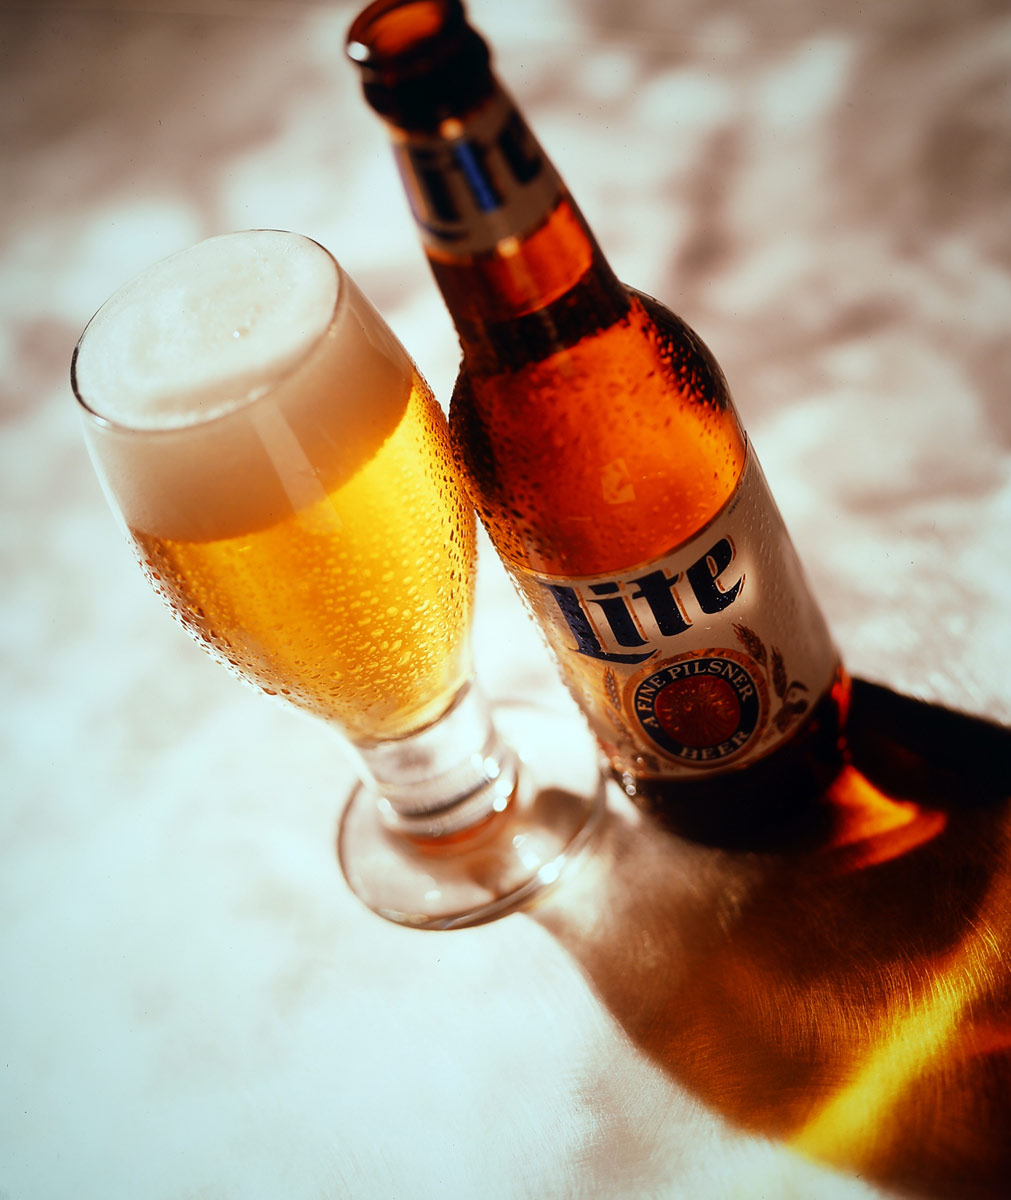 Lit-beer-on-stainless-2